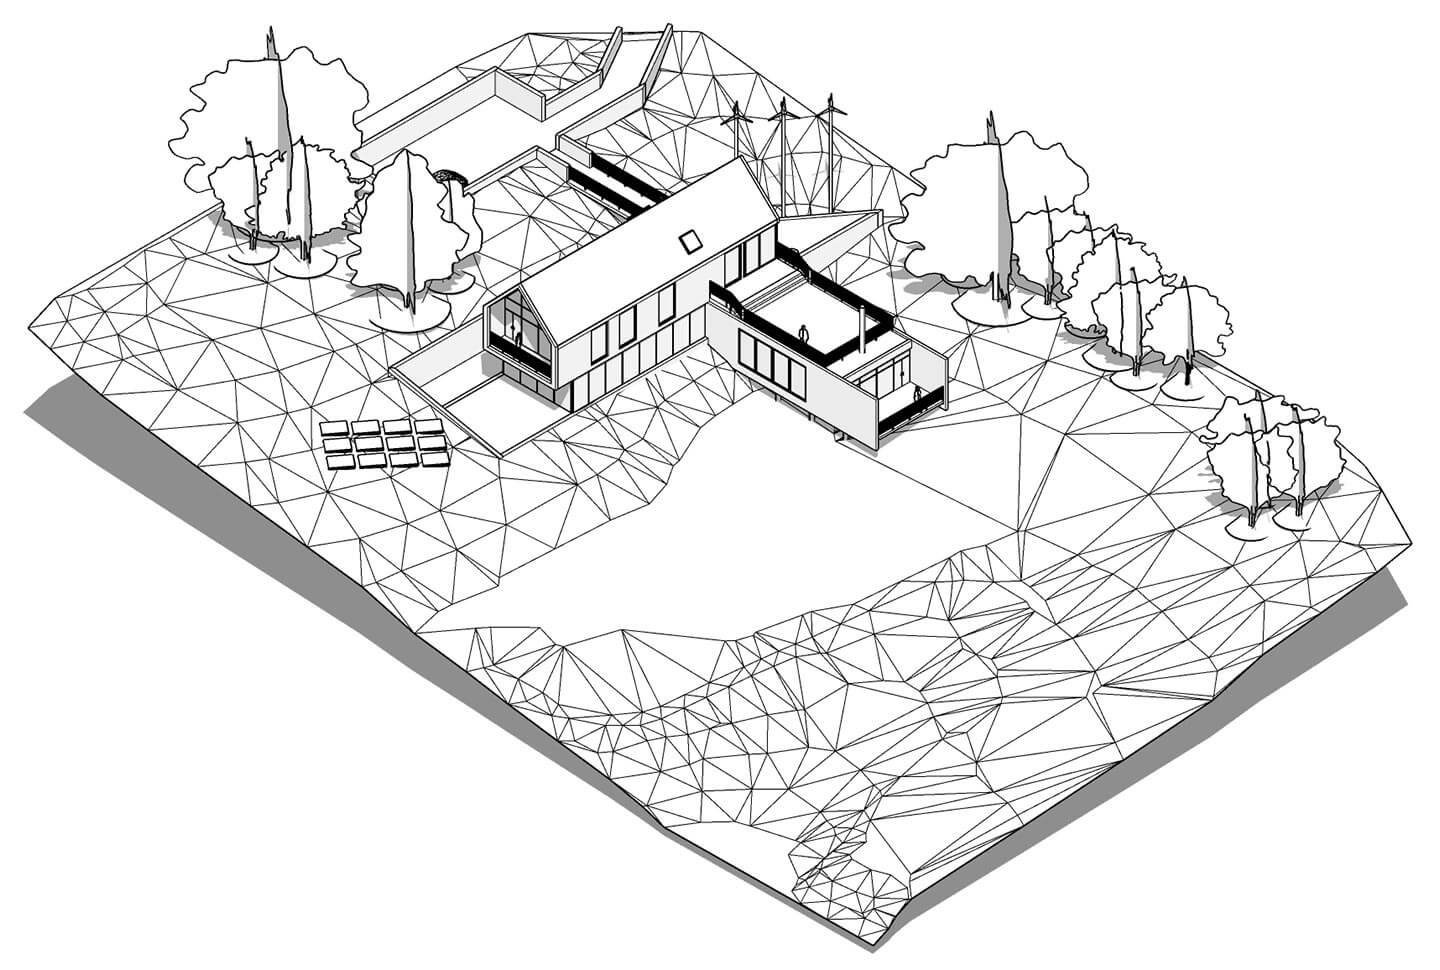 How To Export A Revit Model To Sketchup